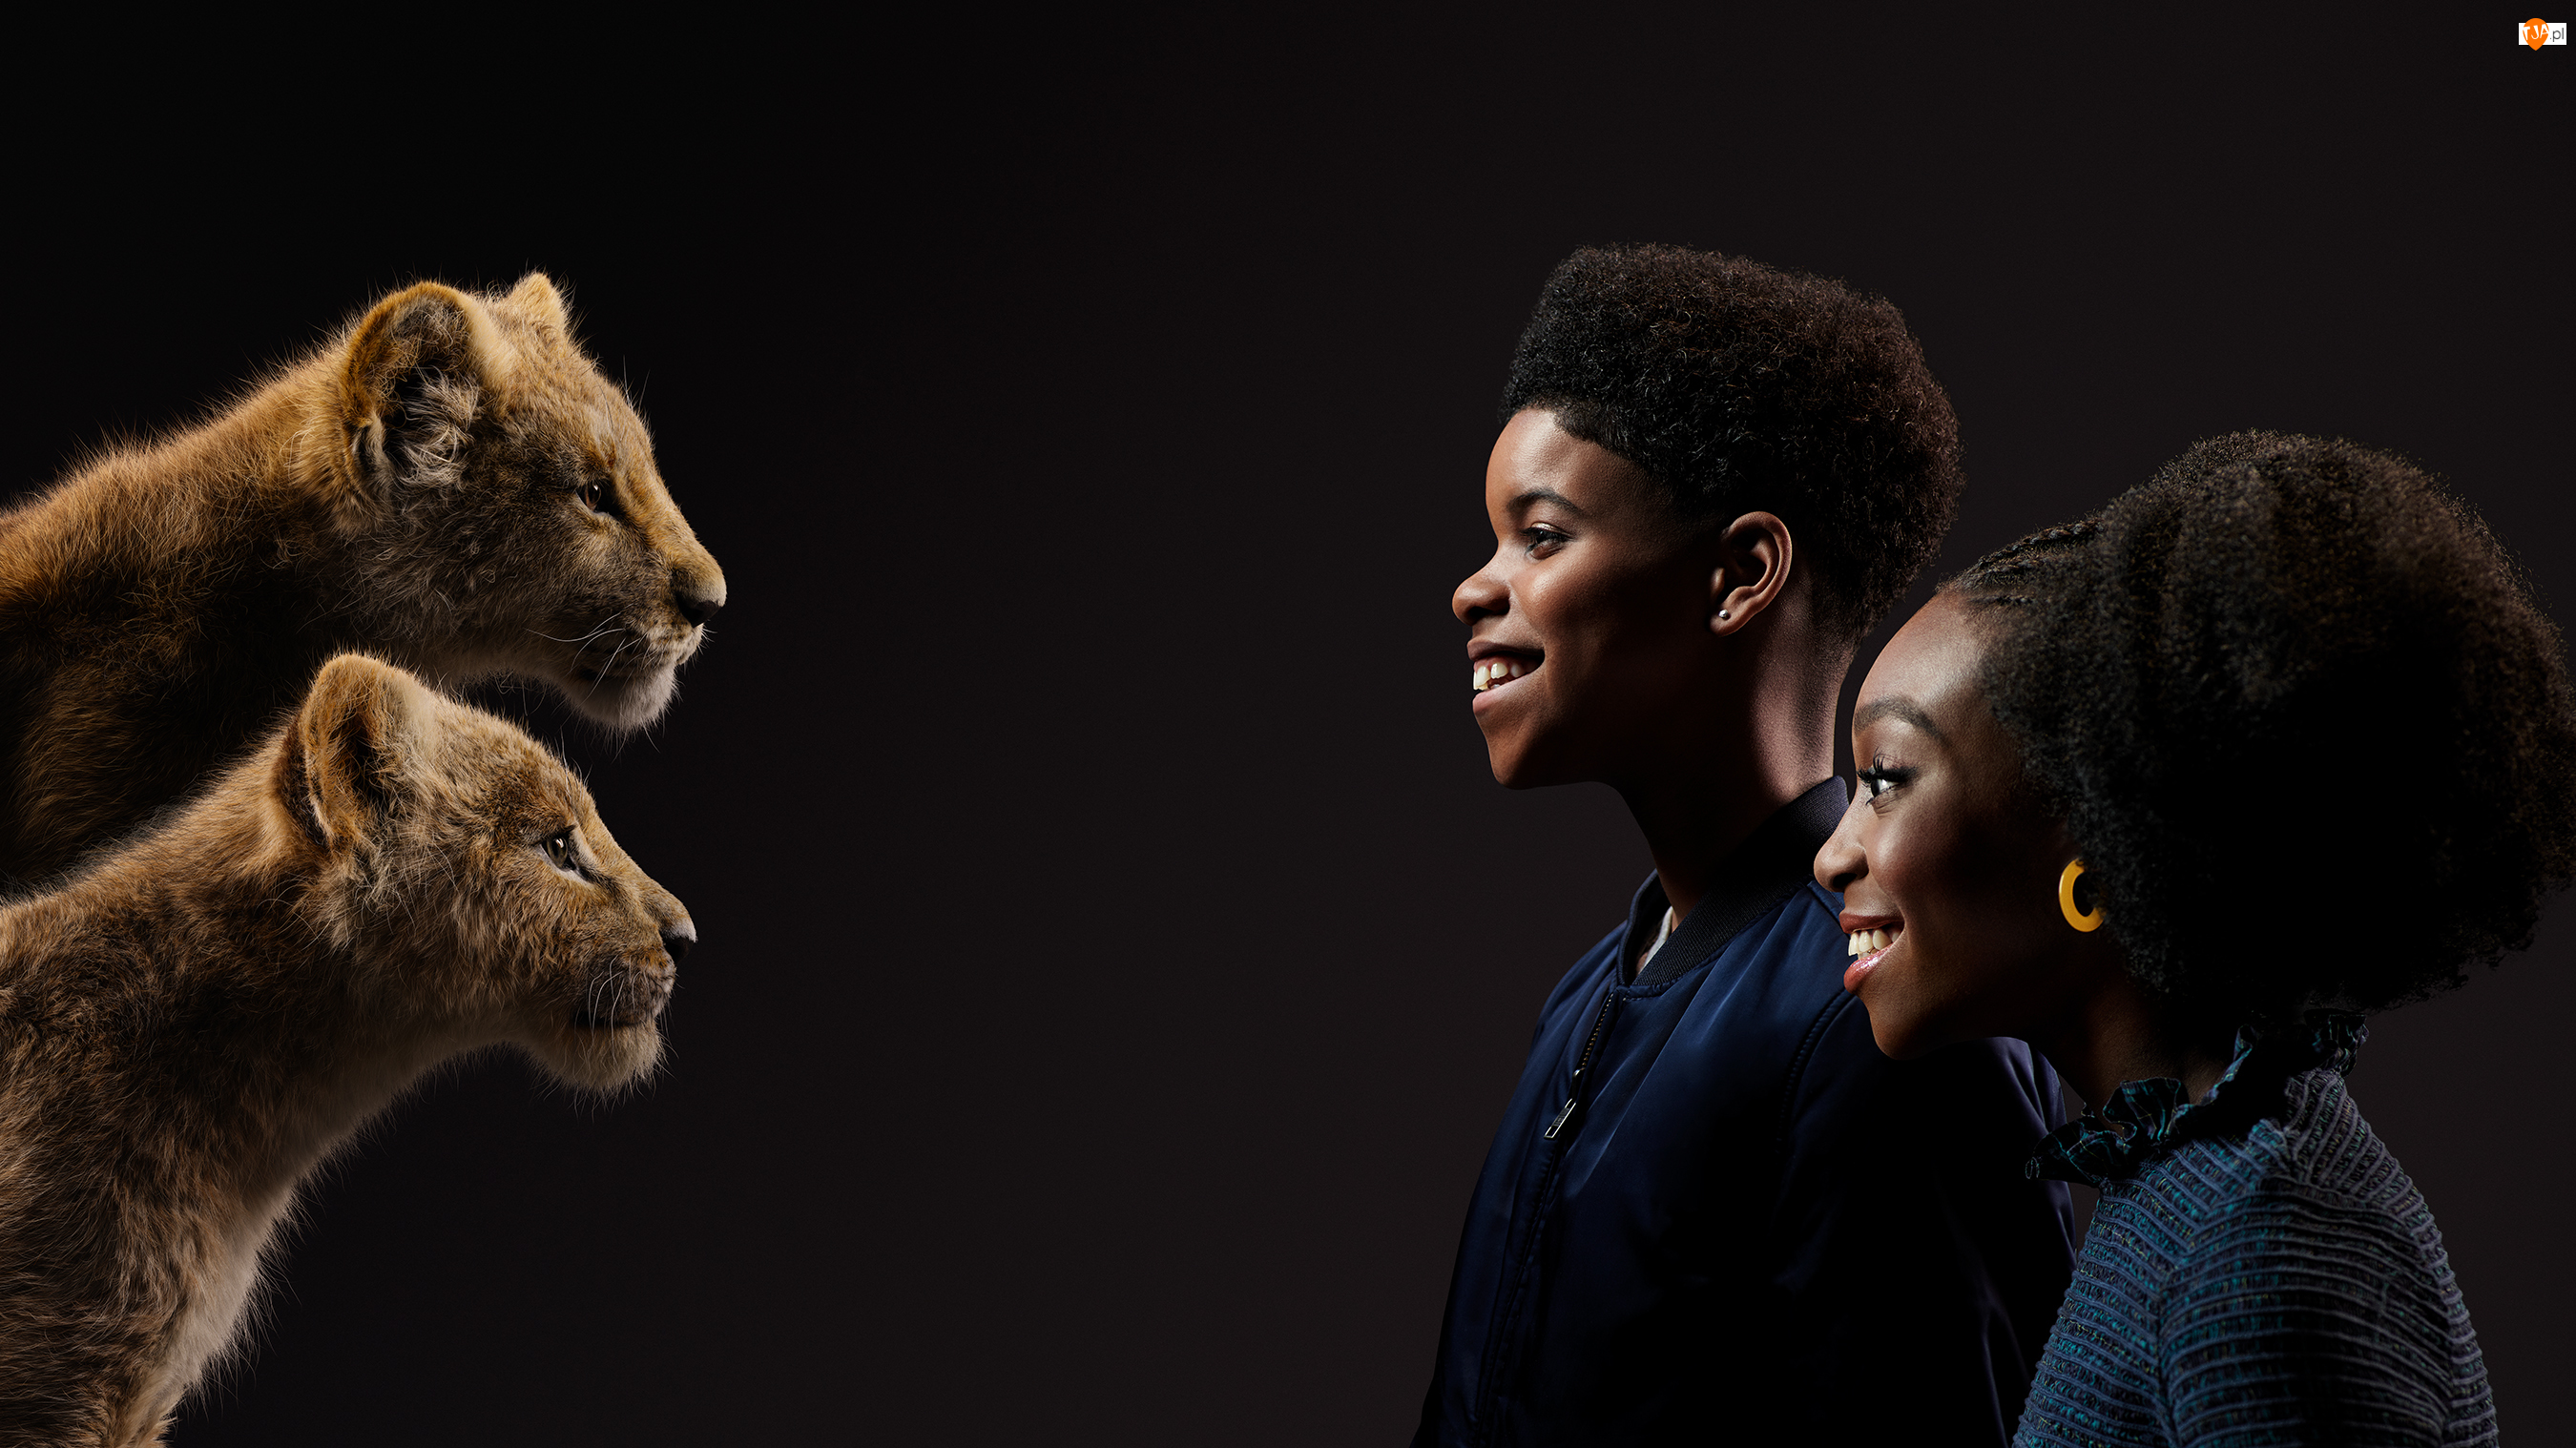 Obsada dubbingowa, Film, Nala, JD McCrary, Król Lew, Simba, Shahadi Wright Joseph, The Lion King